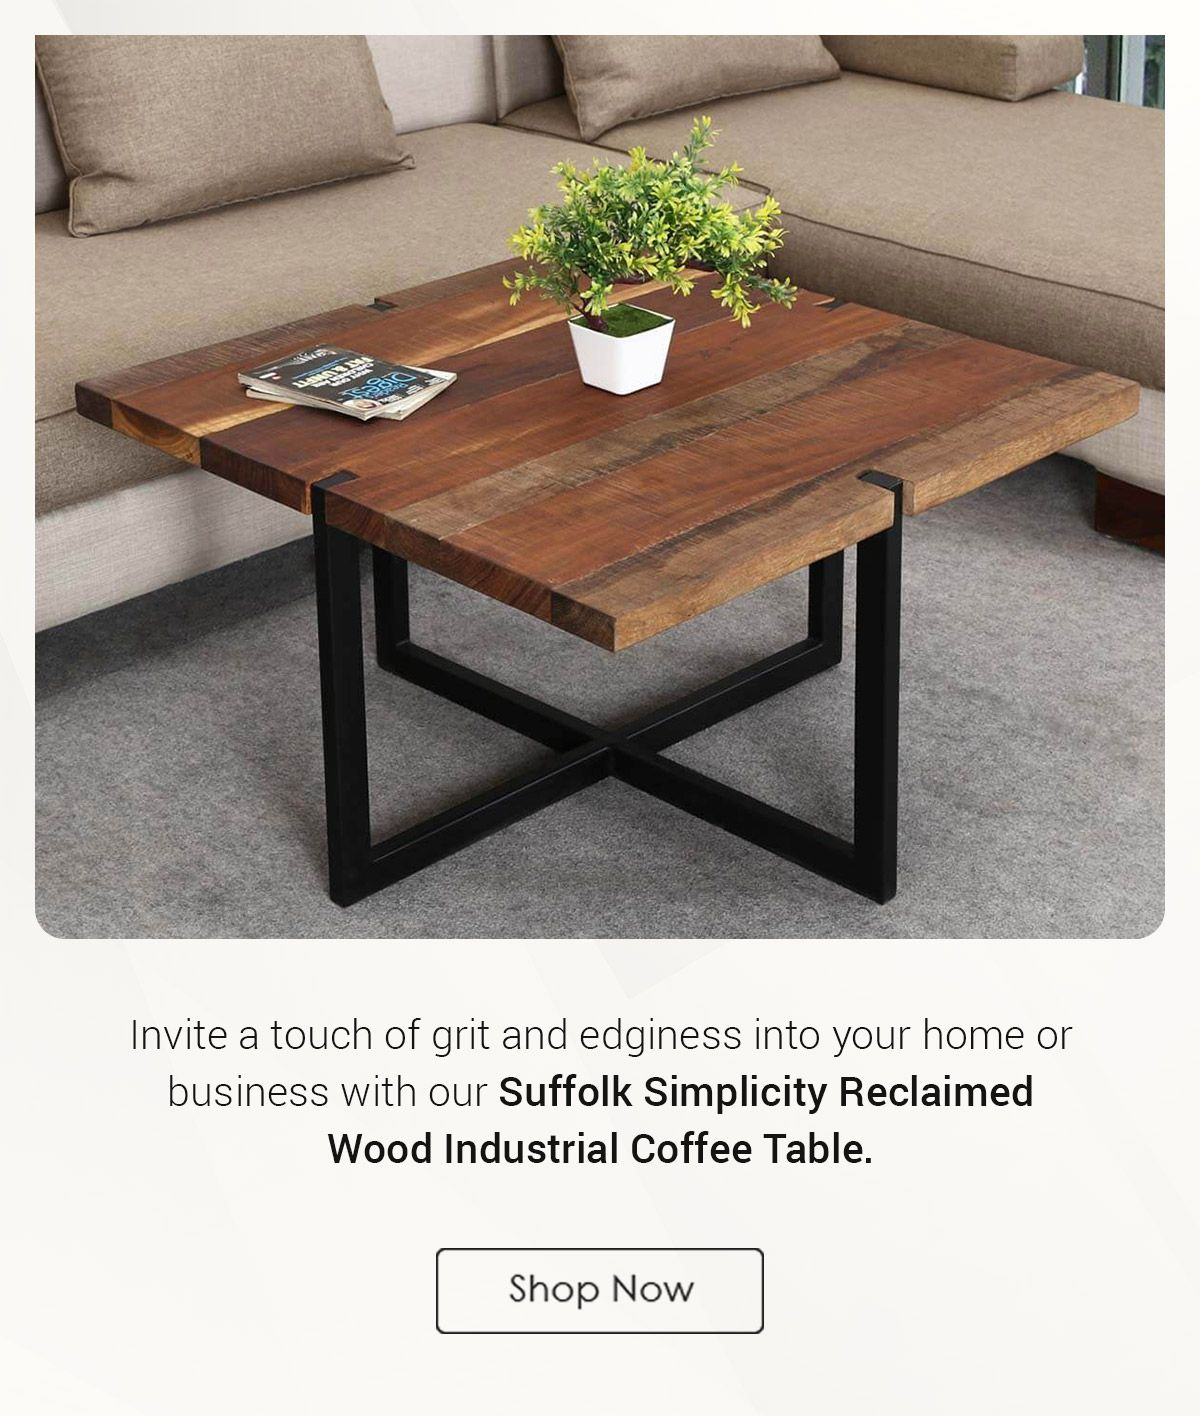 Suffolk Reclaimed Wood Iron Square Coffee Table Coffee Table Coffee Table Square Old Wood Table [ 1416 x 1200 Pixel ]